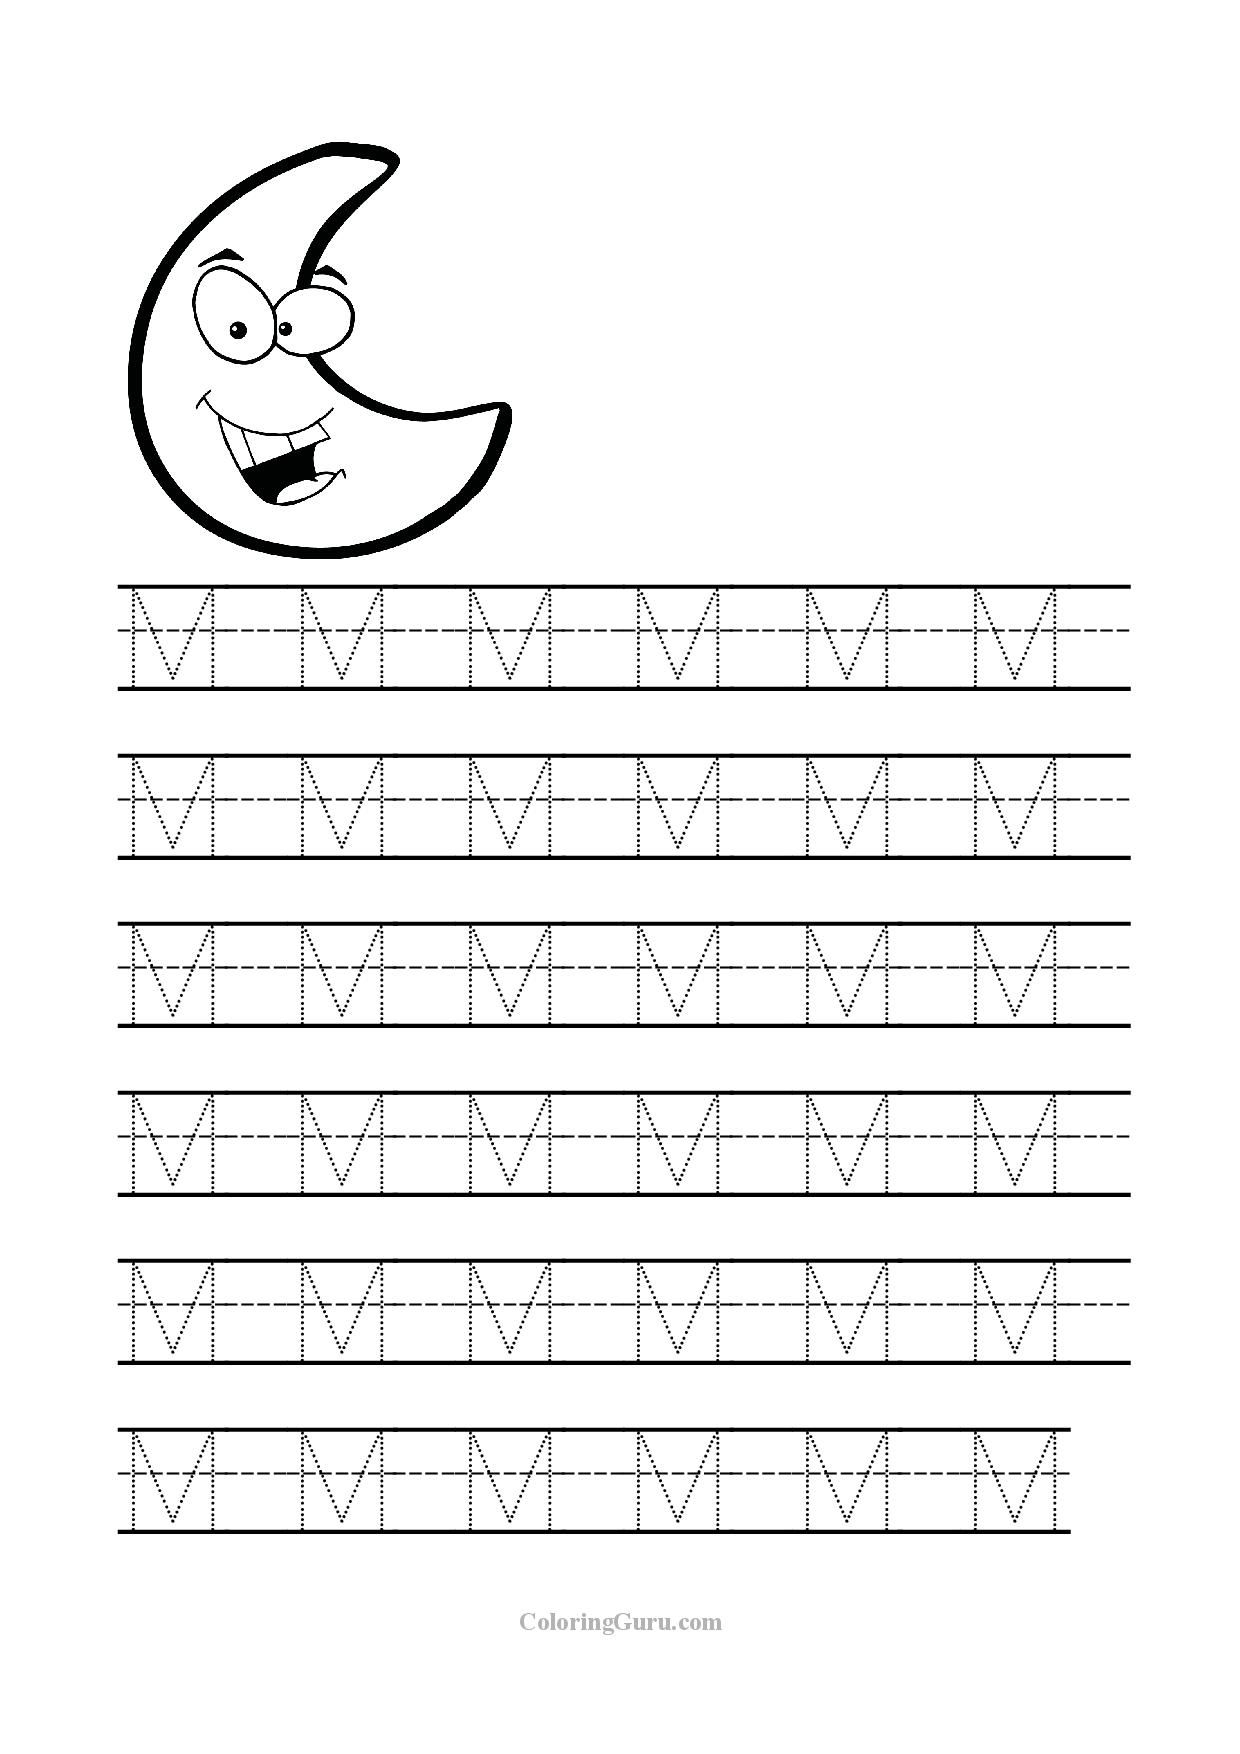 Free Printable Tracing Letter M Worksheets For Preschool regarding Letter M Worksheets Printable